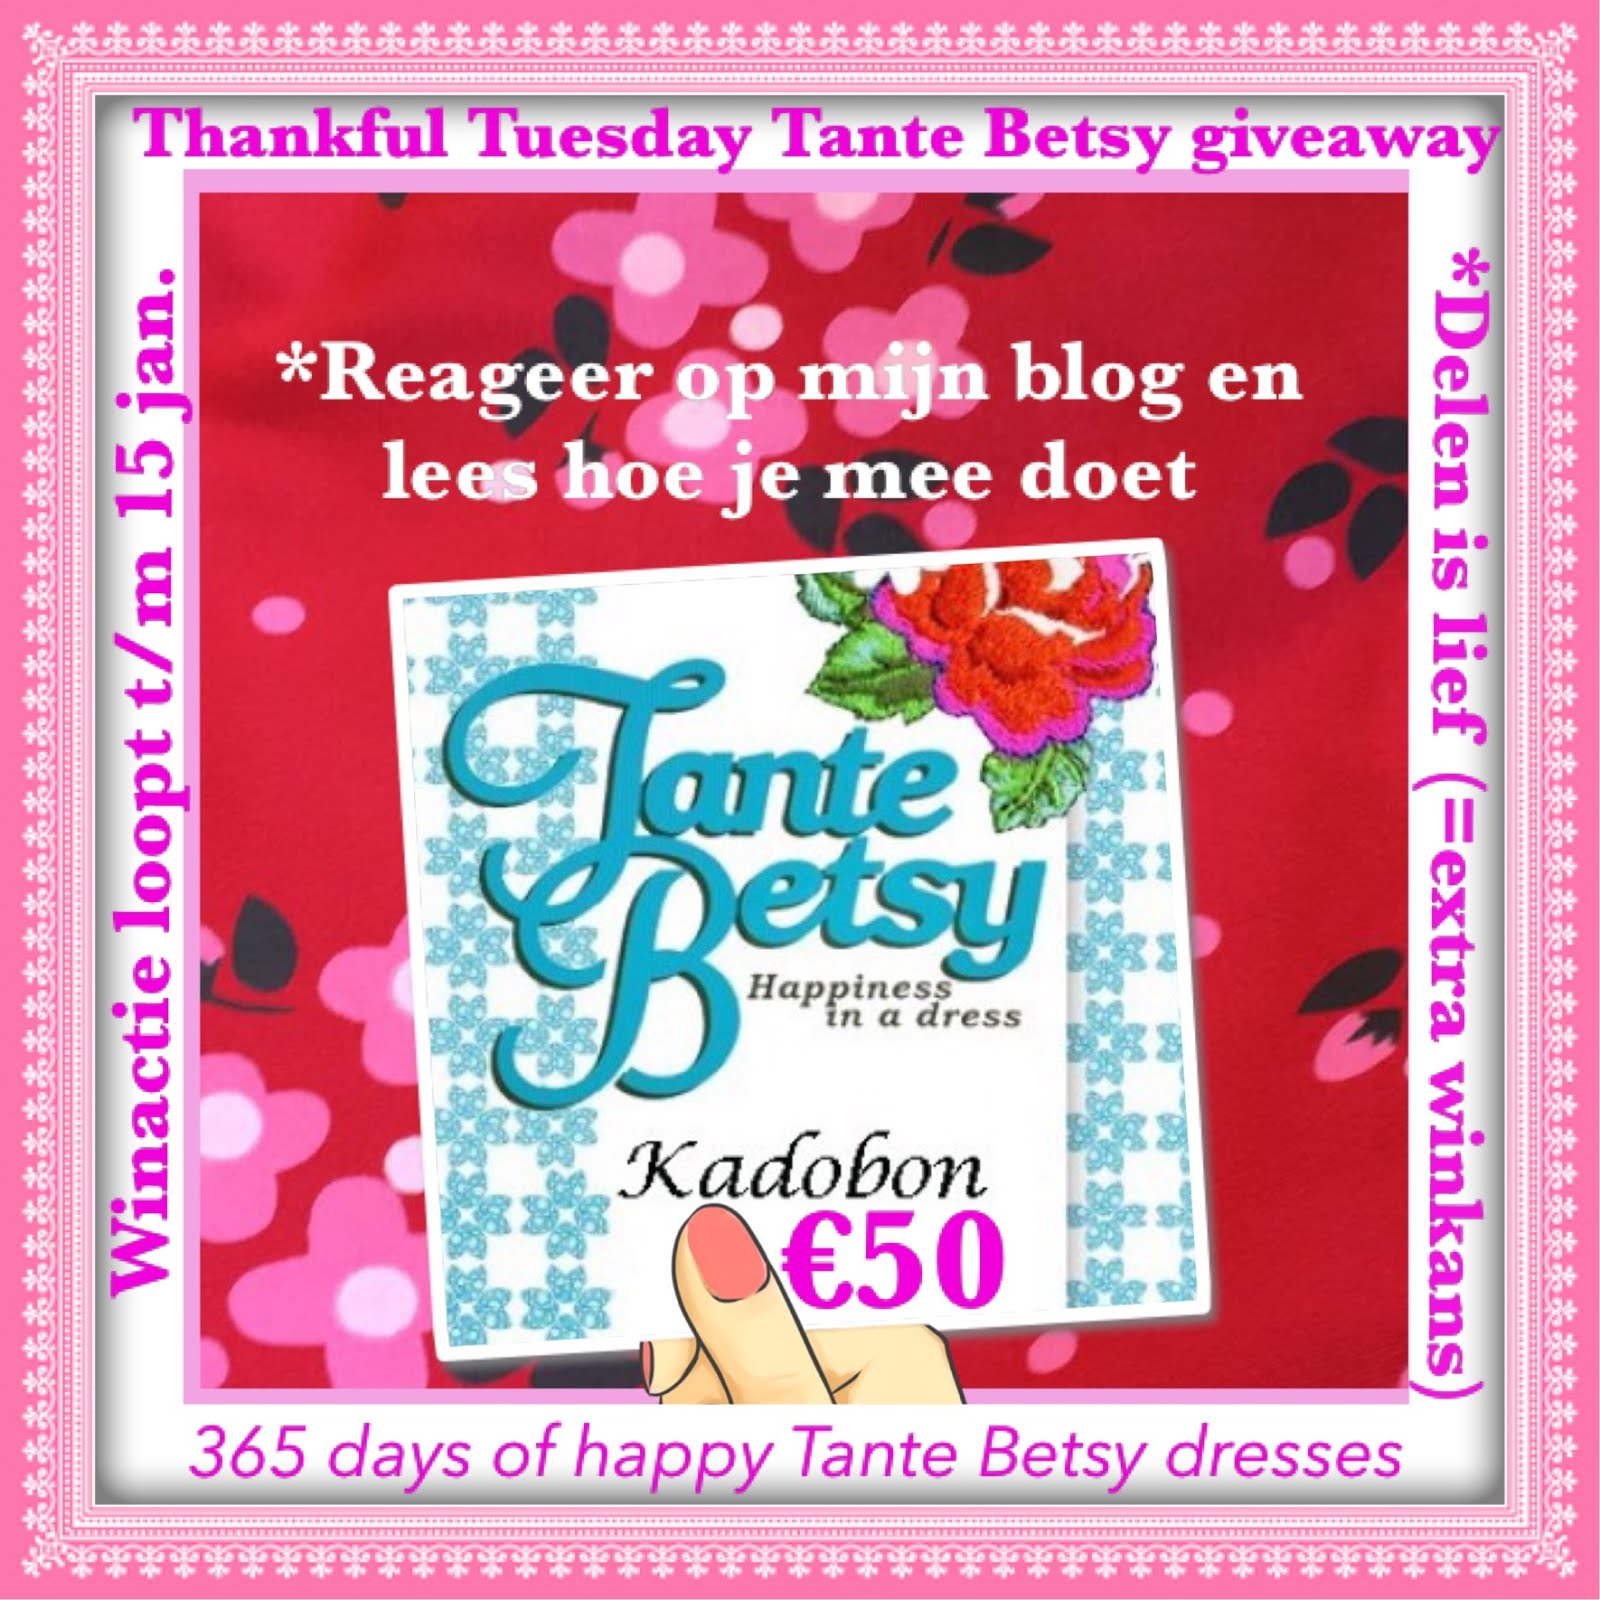 Thankful Tuesday Tante Betsy Giveaway